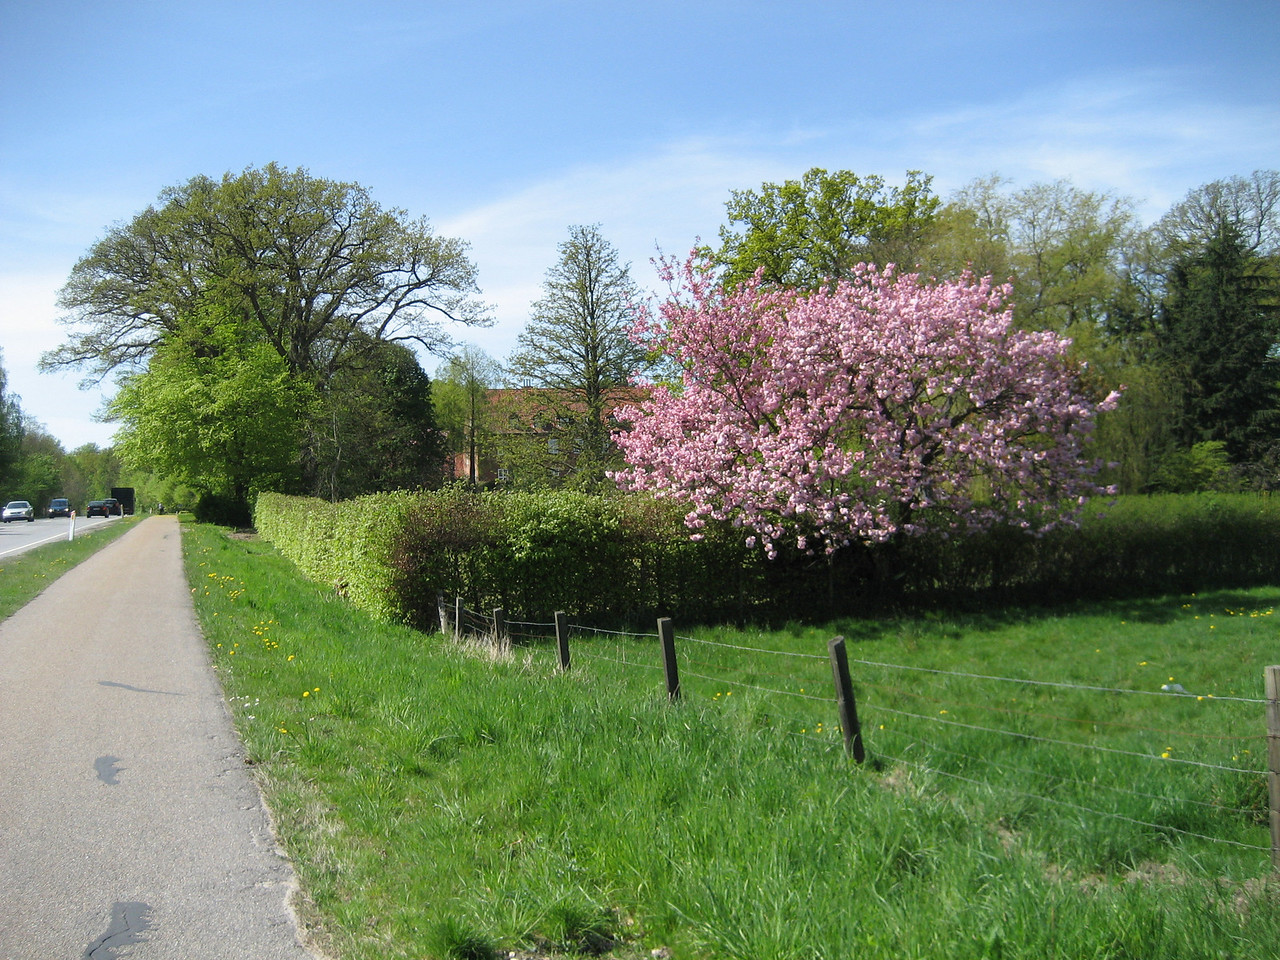 Everything was in full bloom. Spring in Denmark is absolutely amazing.